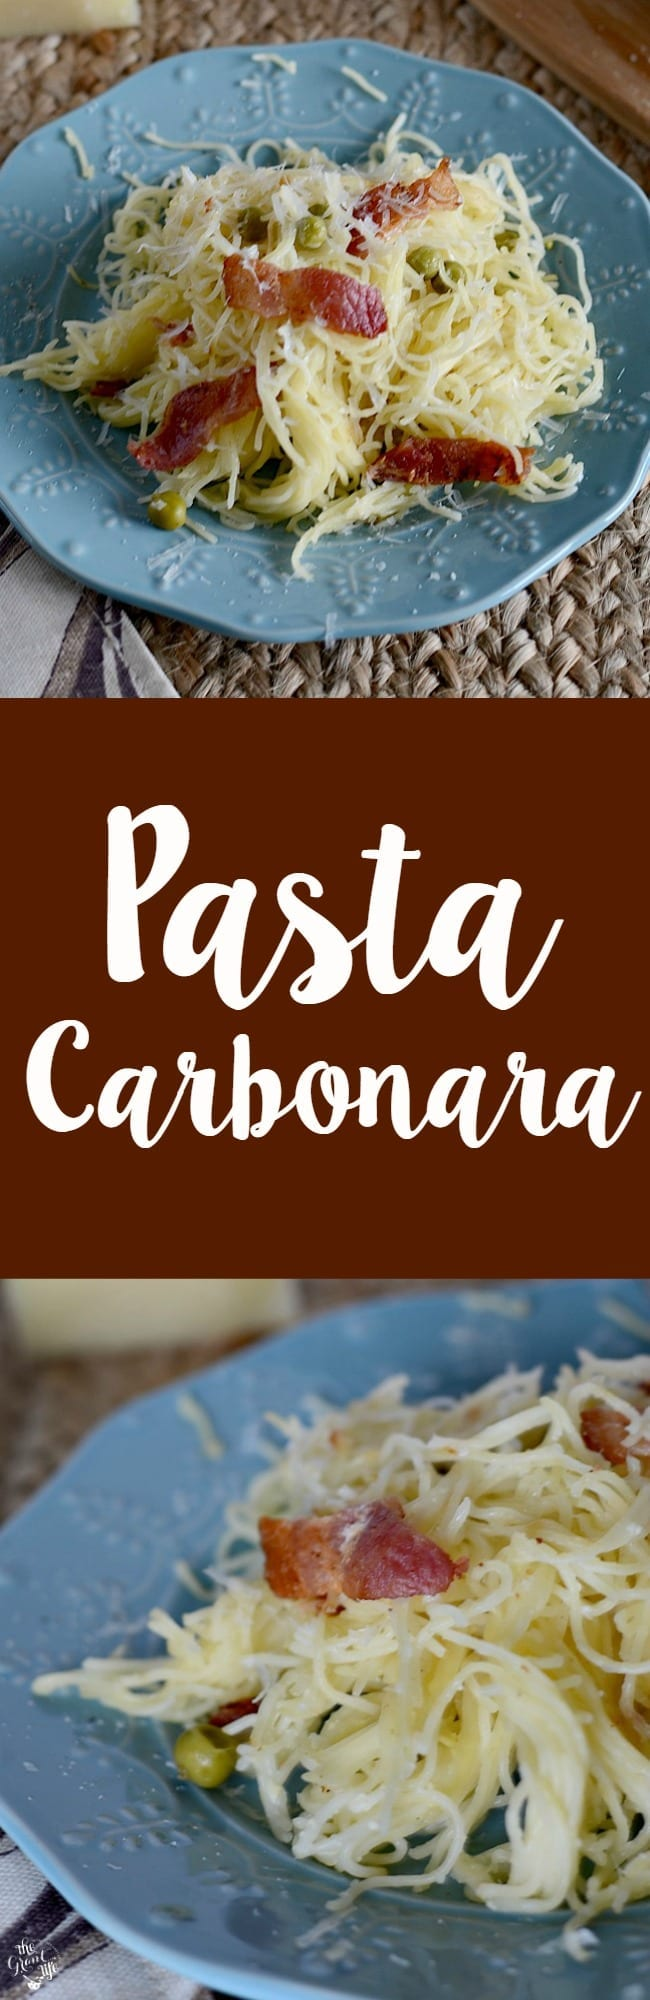 Homemade pasta carbonara recipe!  Make this easy pasta at home!  Perfect for an easy weeknight dinner